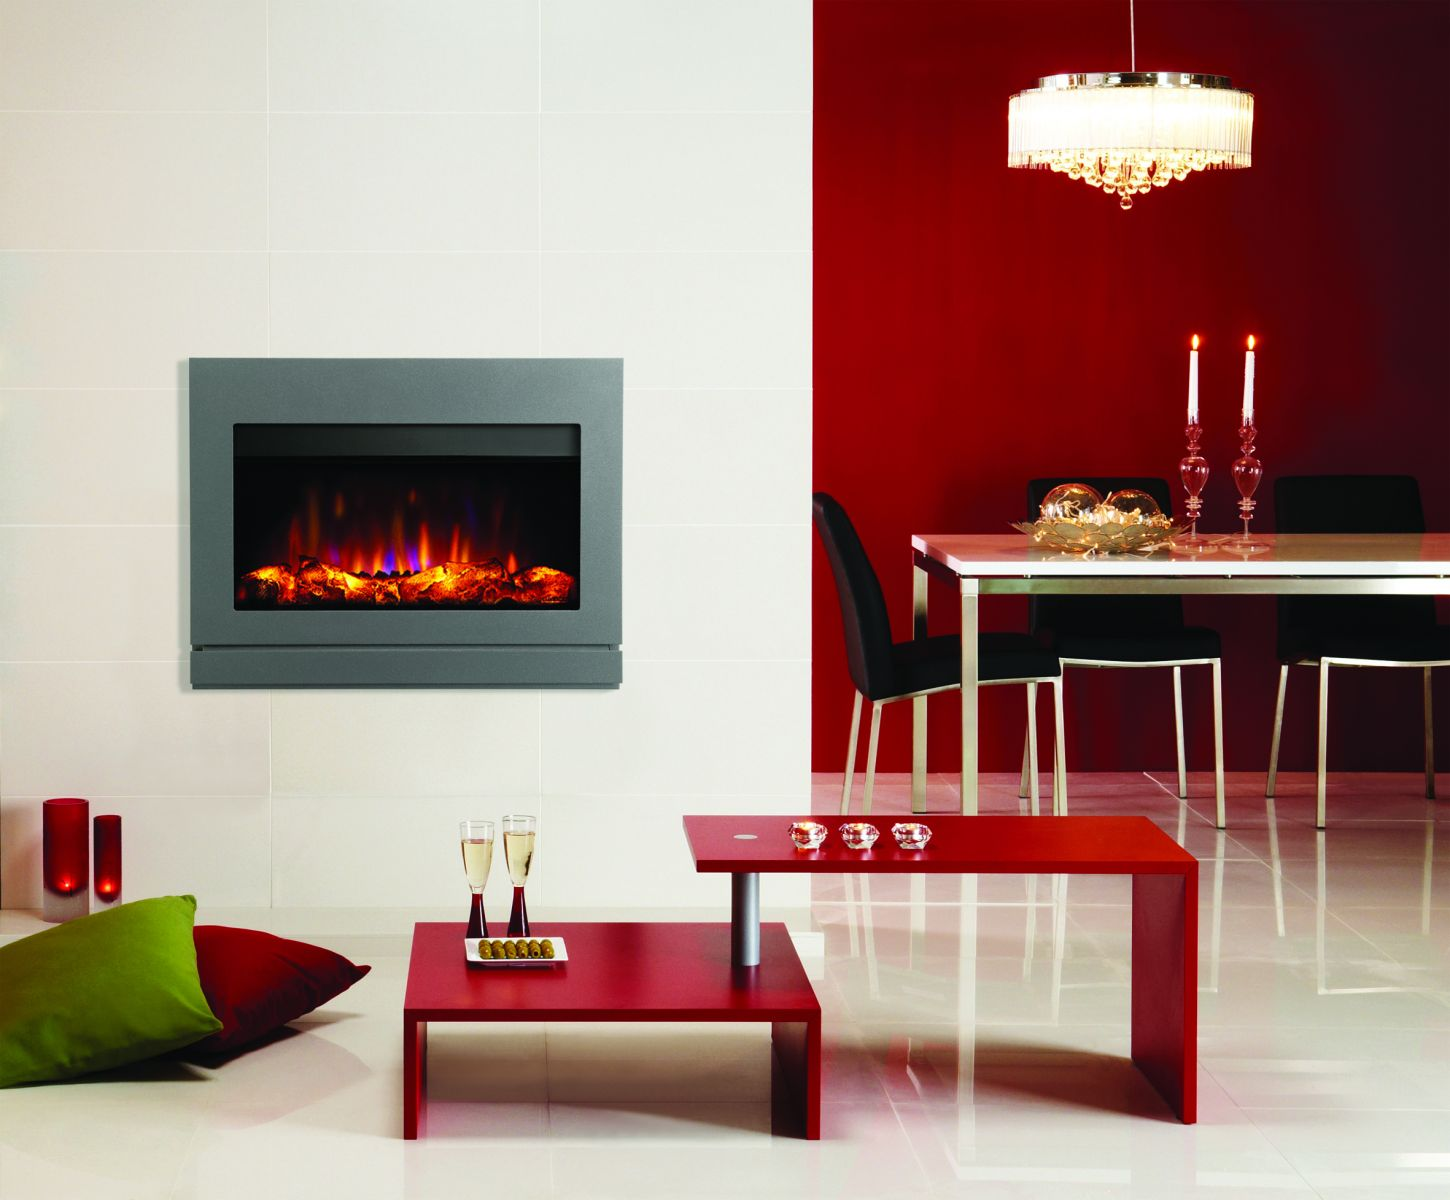 Riva2 670 Electric Designio2 Steel in Iridium